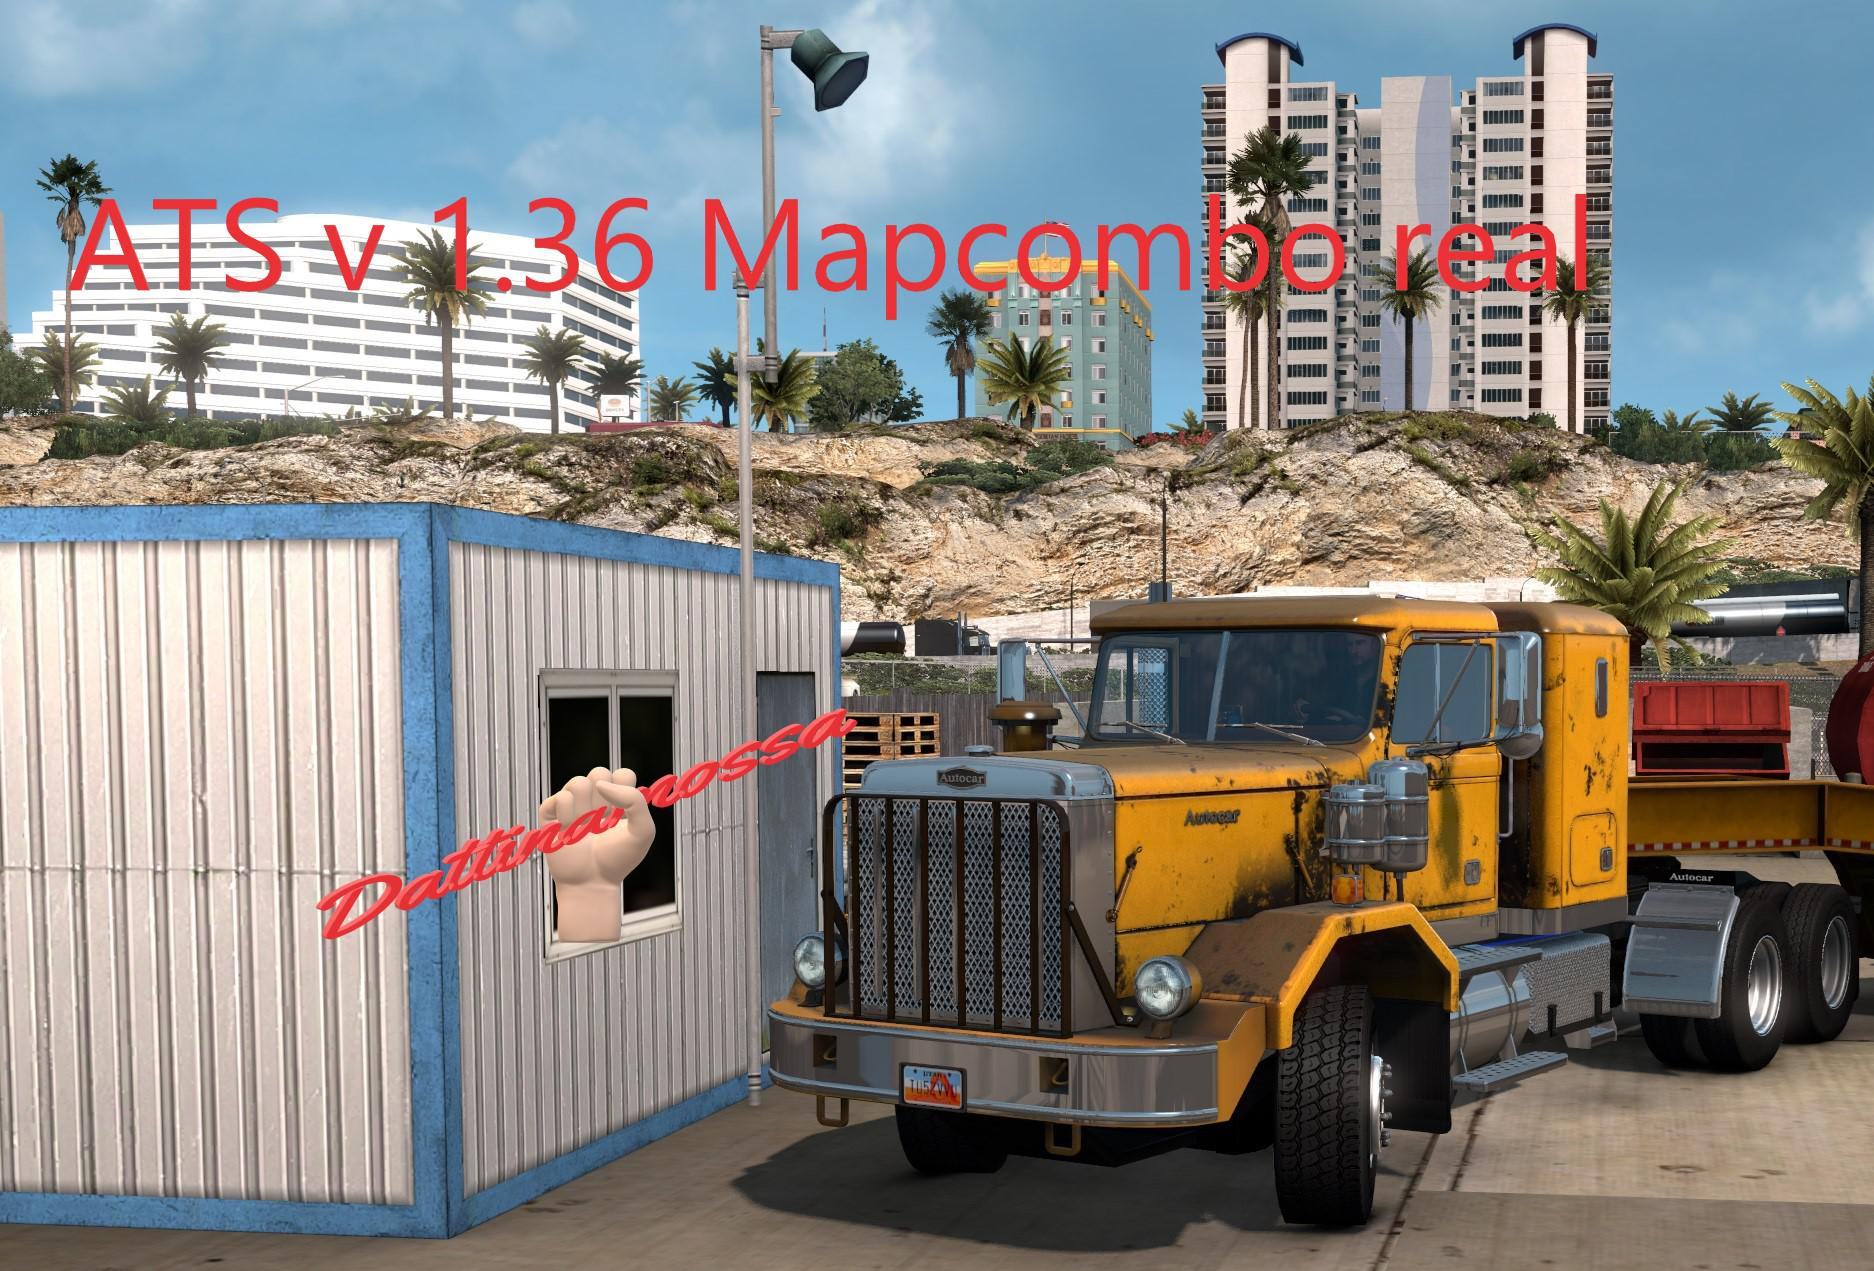 SUPER BIG MAP COMB WORK 100% V1.36.0.1